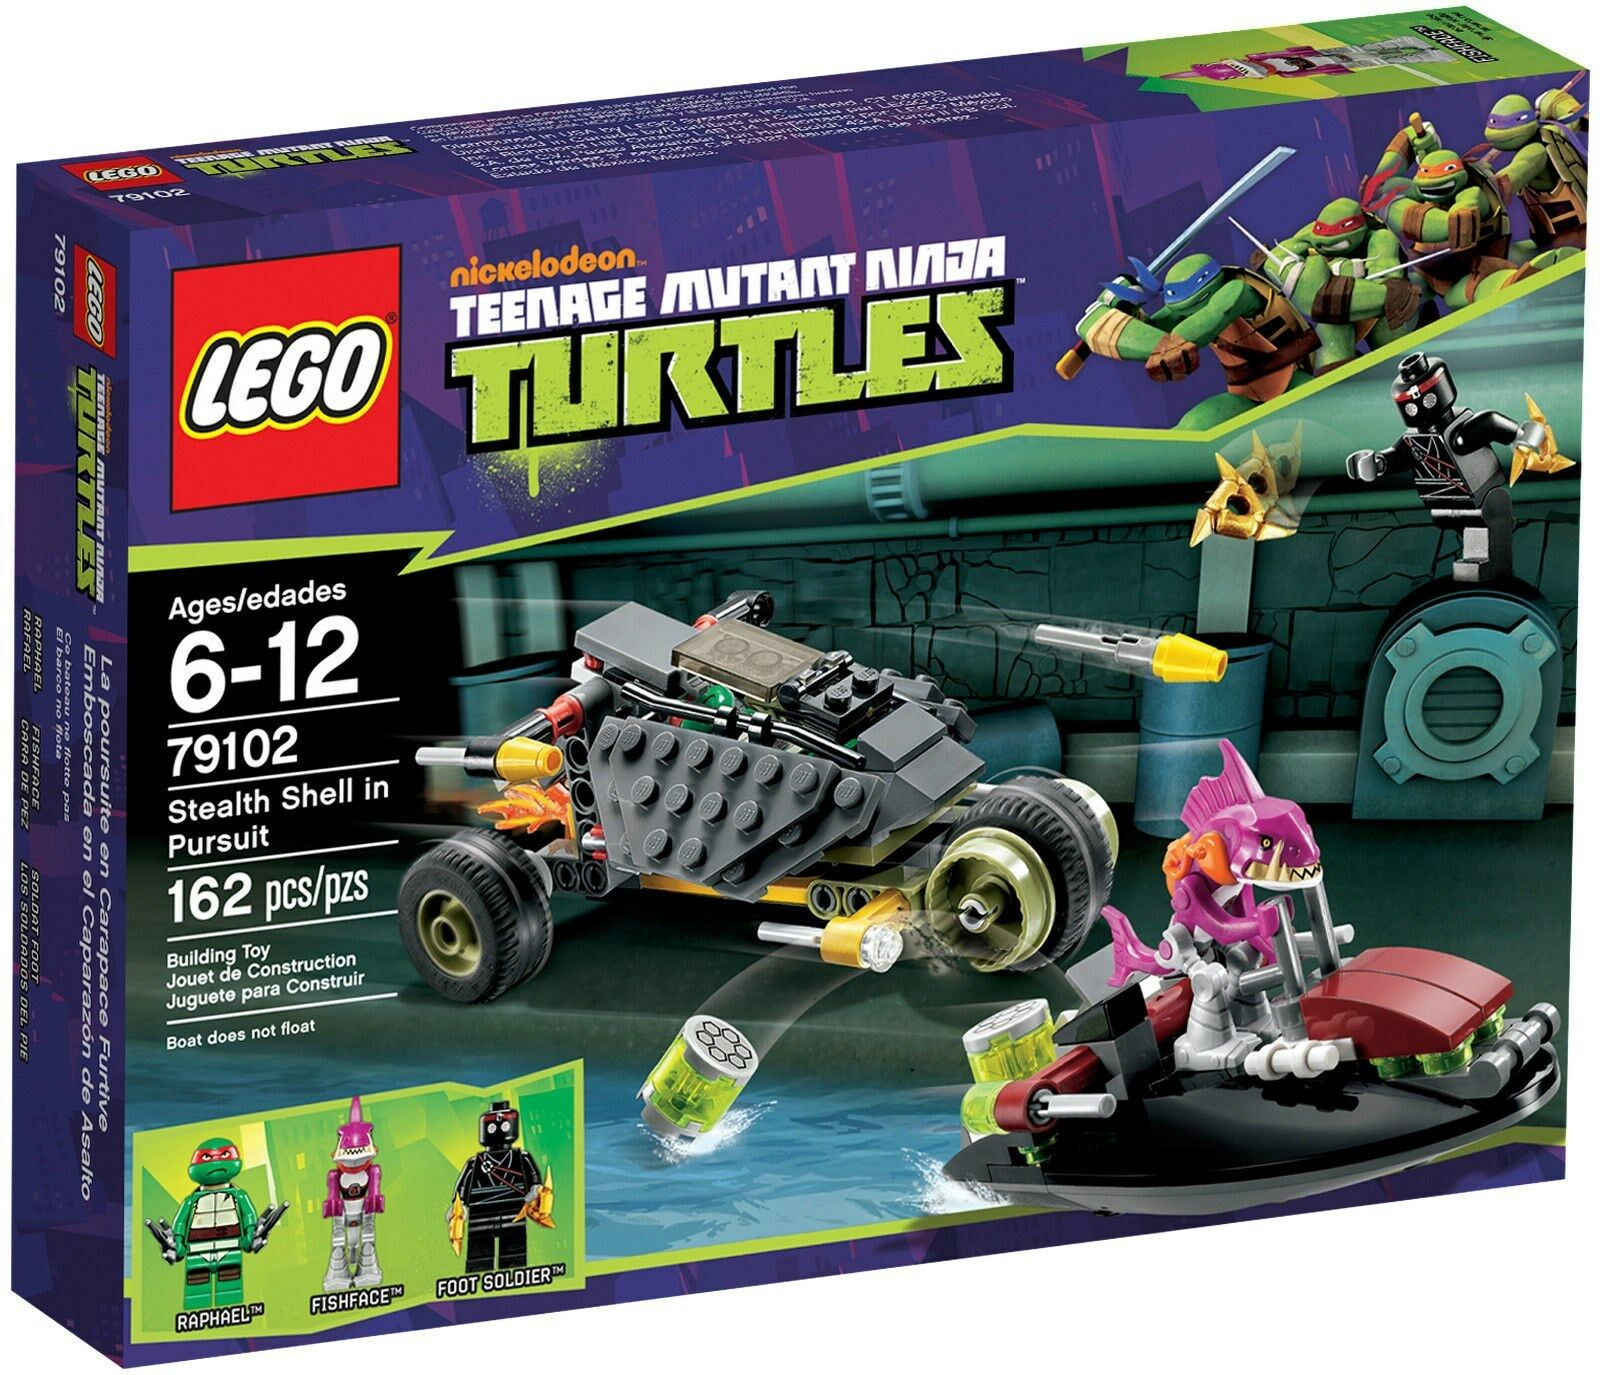 79102 STEALTH SHELL PURSUIT lego NEW legos set TMNT raphael fishface foot soldie